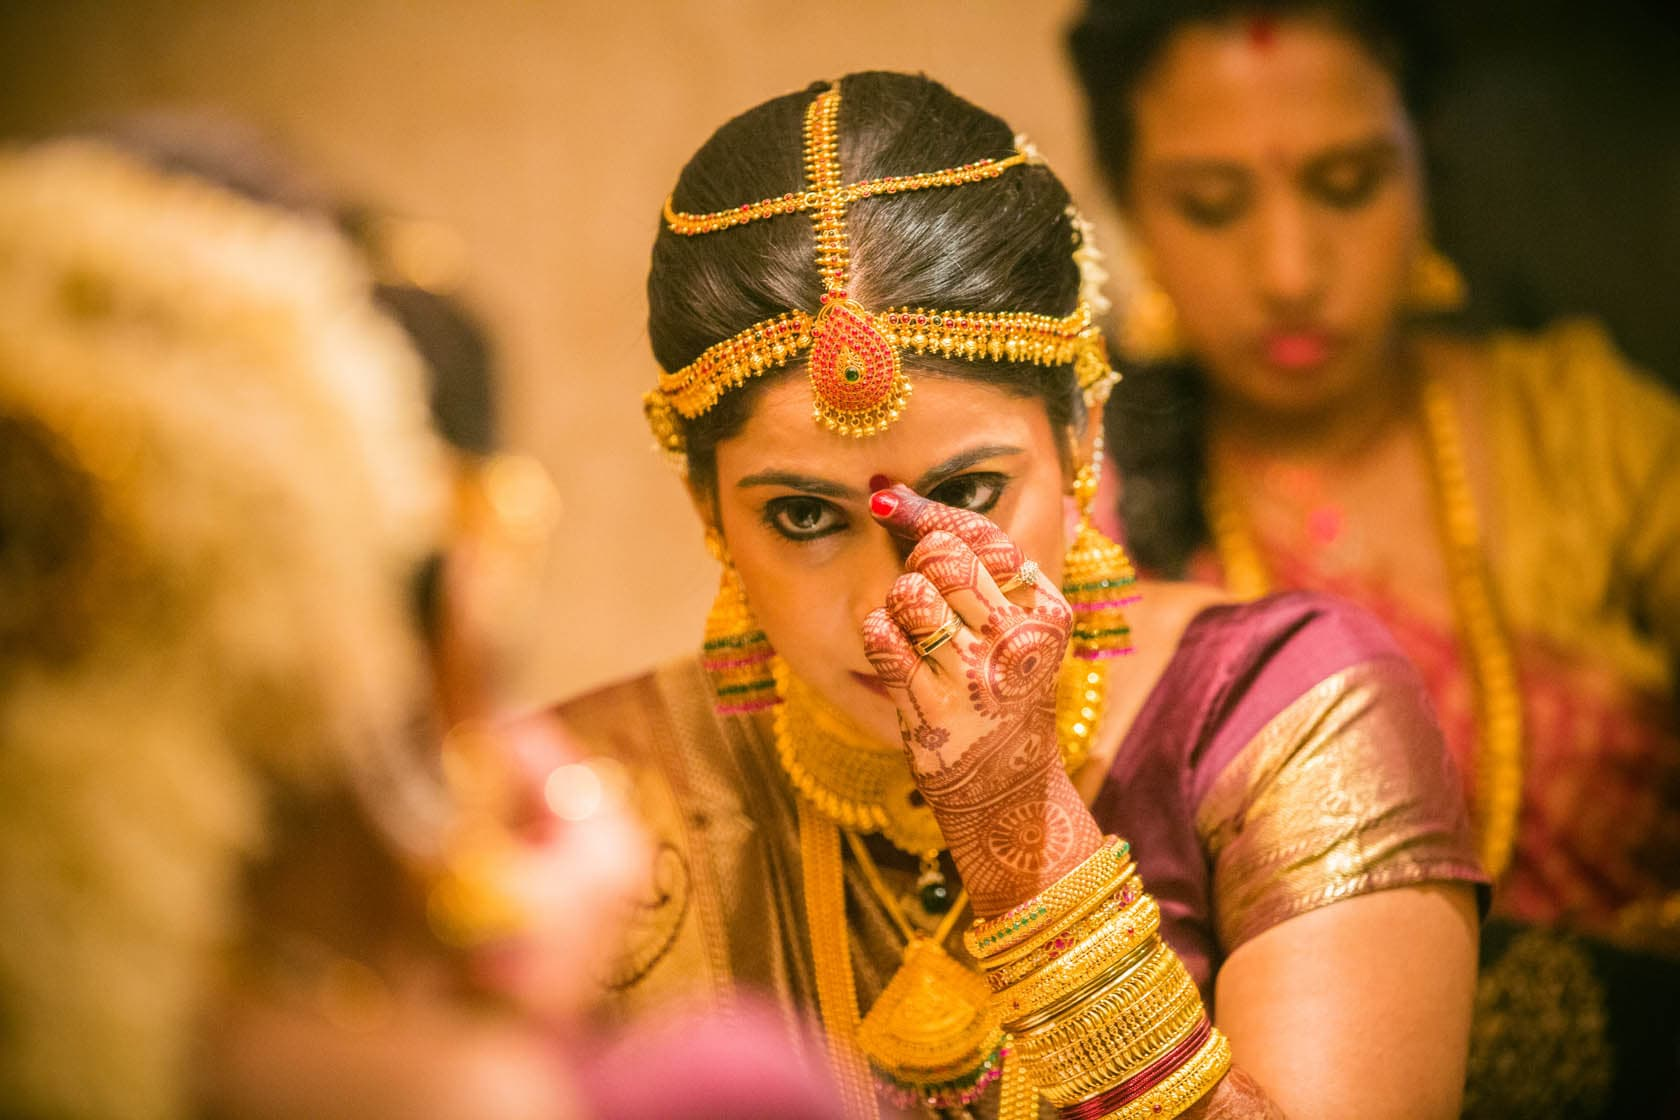 15 Beautiful wedding pictures from all over India